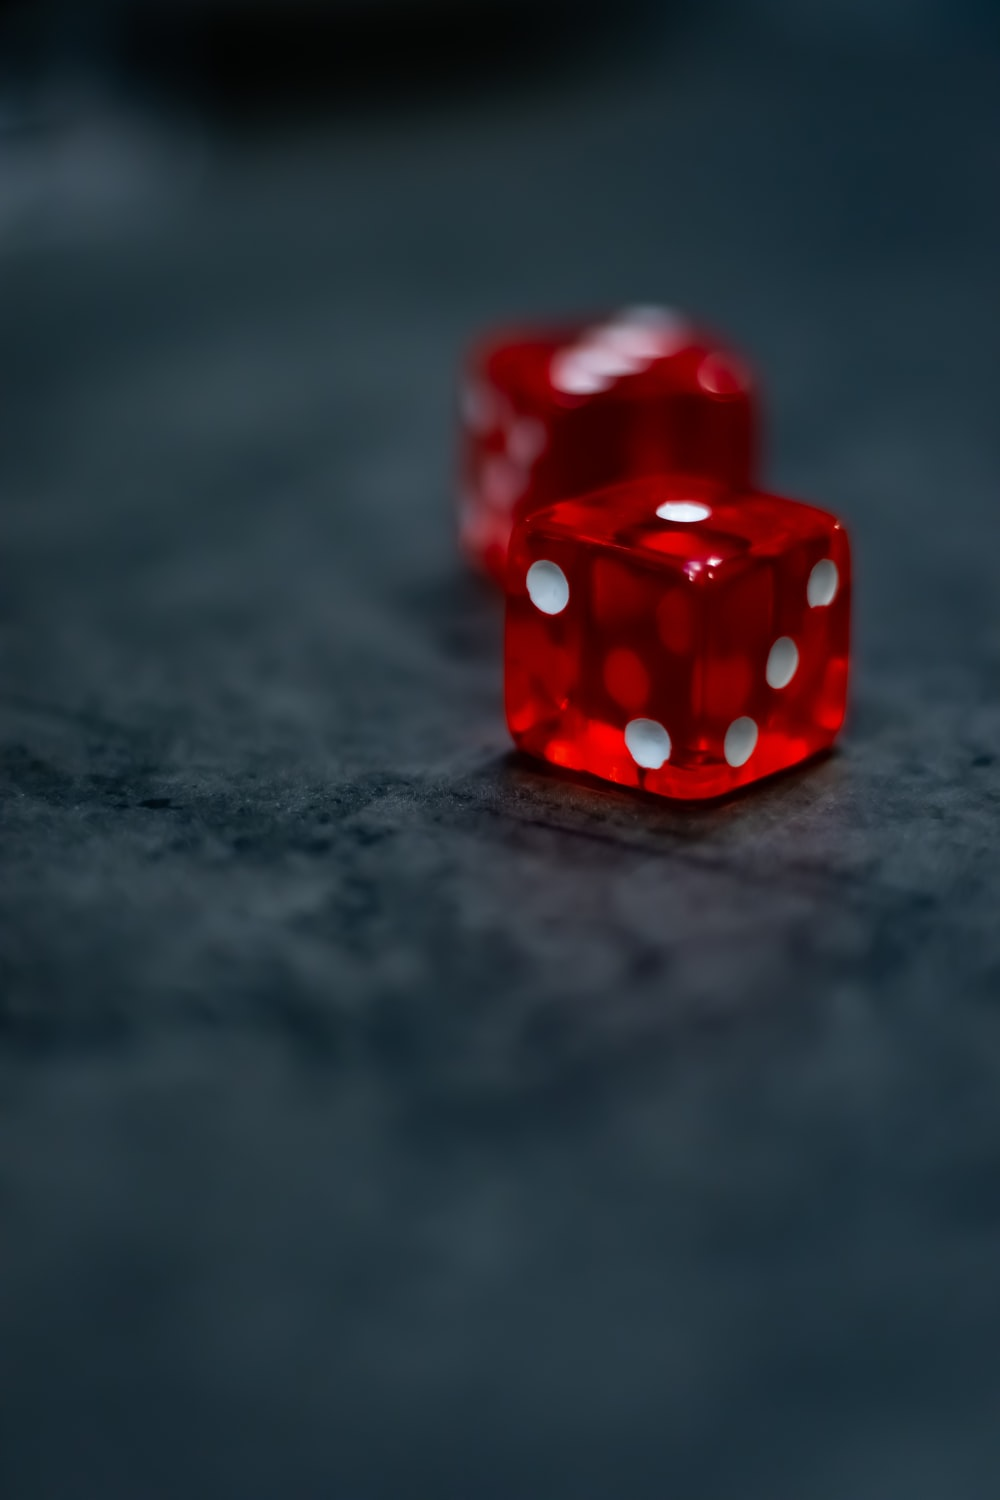 red and white dice on black surface